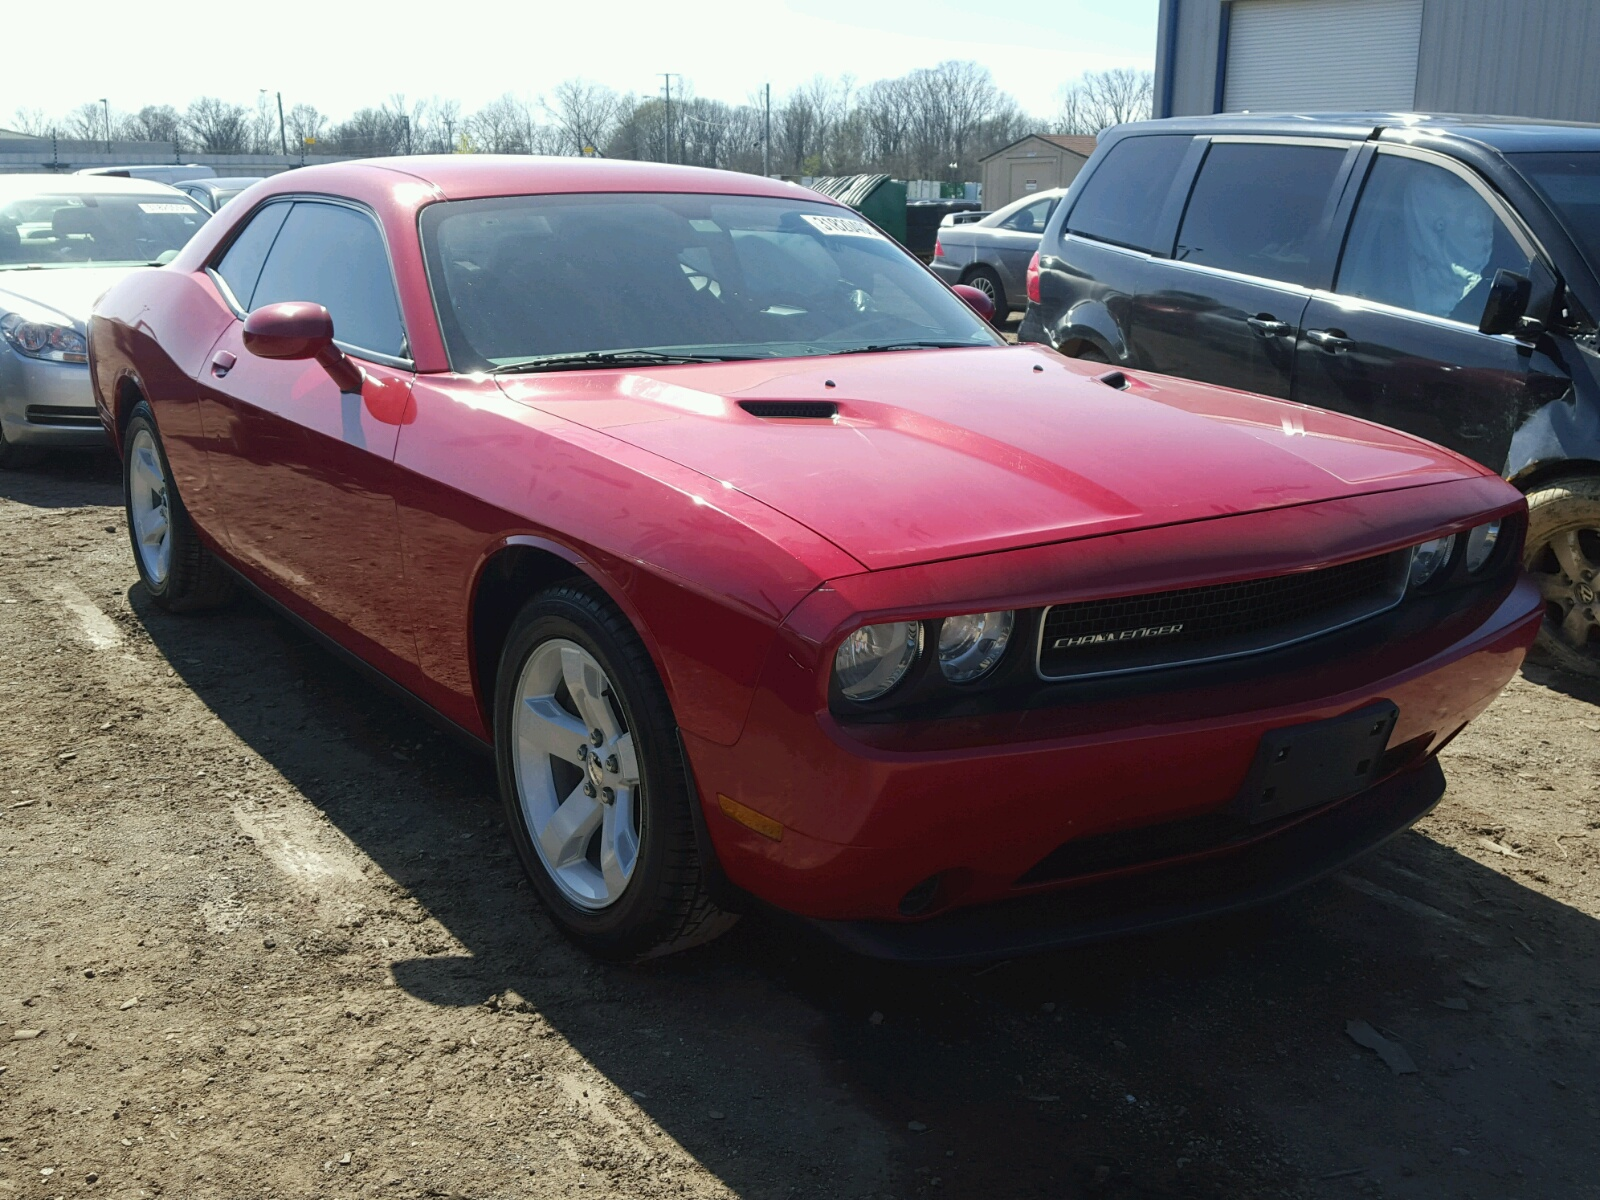 2013 dodge challenger for sale at copart louisville ky lot 31820408. Black Bedroom Furniture Sets. Home Design Ideas